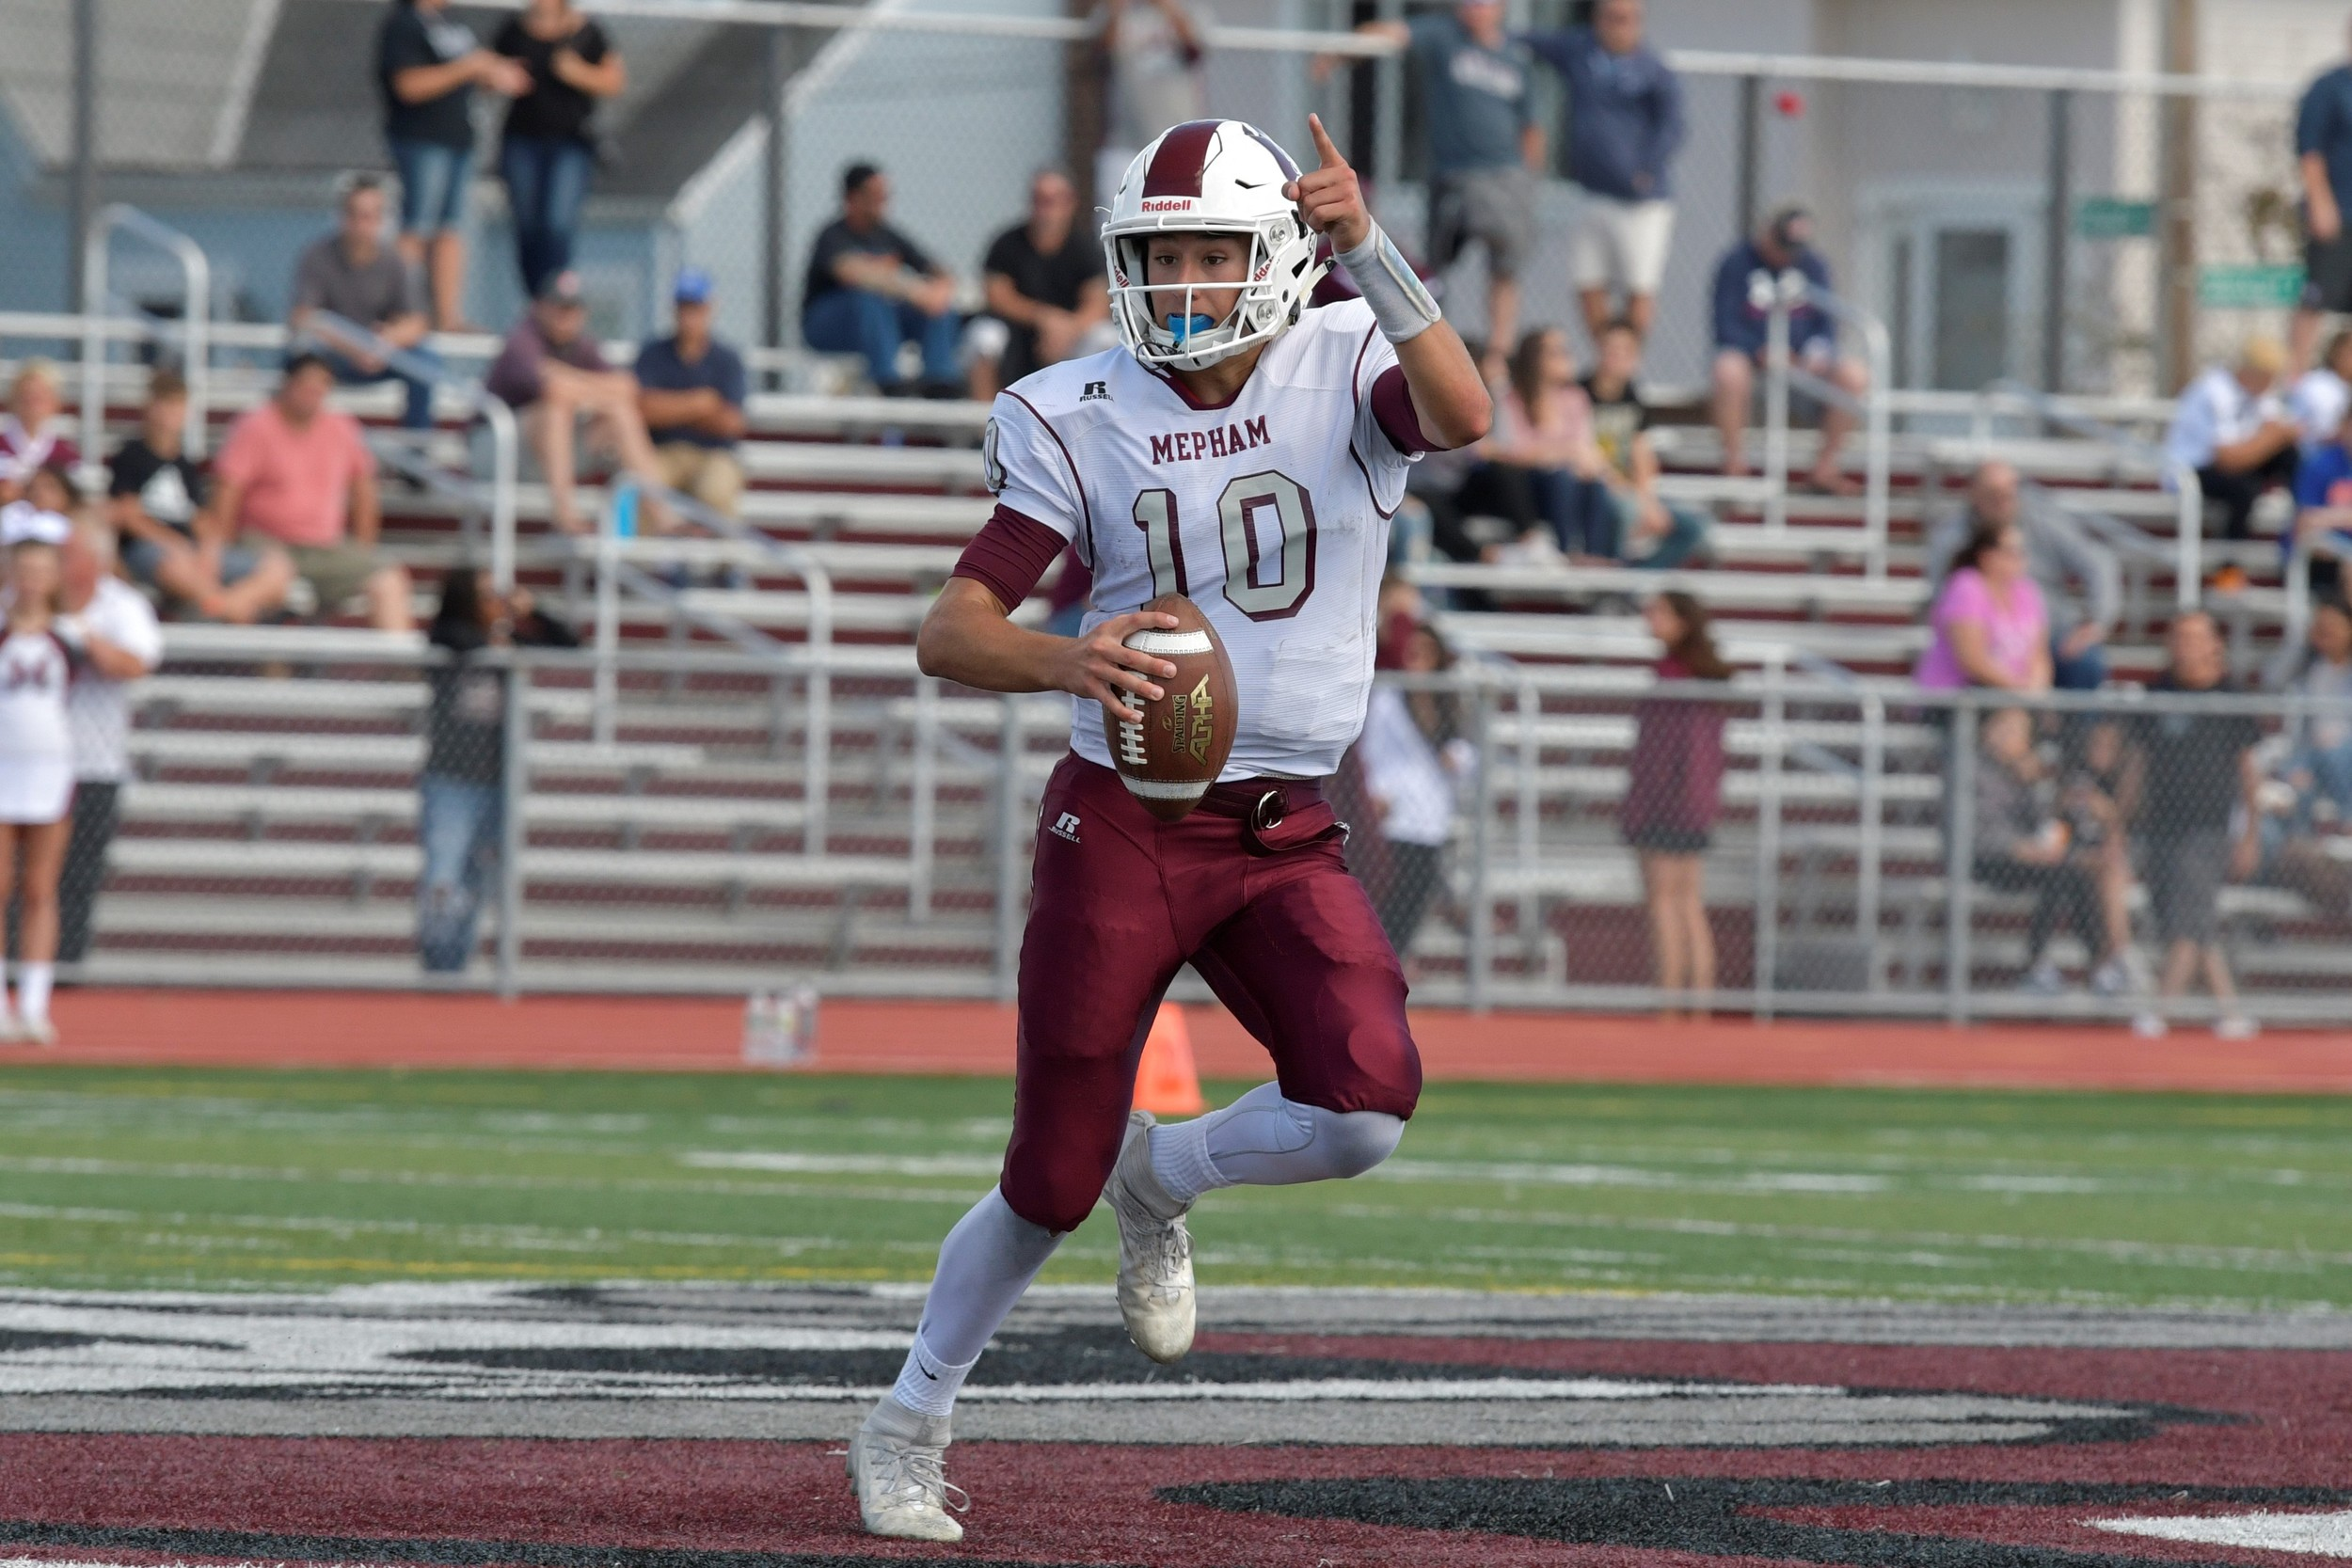 Mepham QB Mike Proios had 3 passing touchdowns and 2 rushing scores in its 35-34 season-opening win over MacArthur.